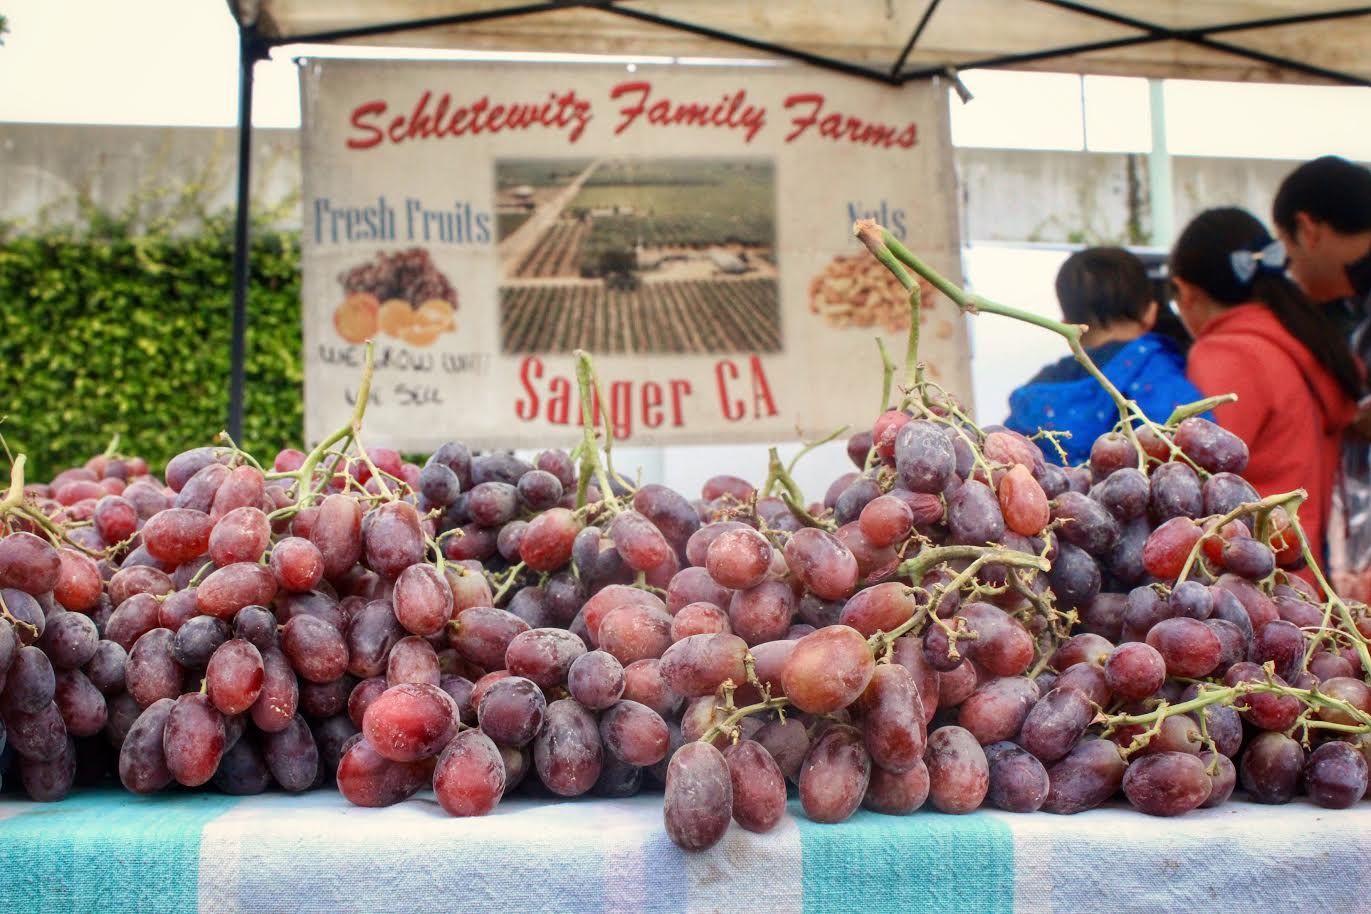 Belmont's farmers' market filled with fresh fruit and vegetables on Sunday morning. Samples are laid out for customers to taste the local produce.